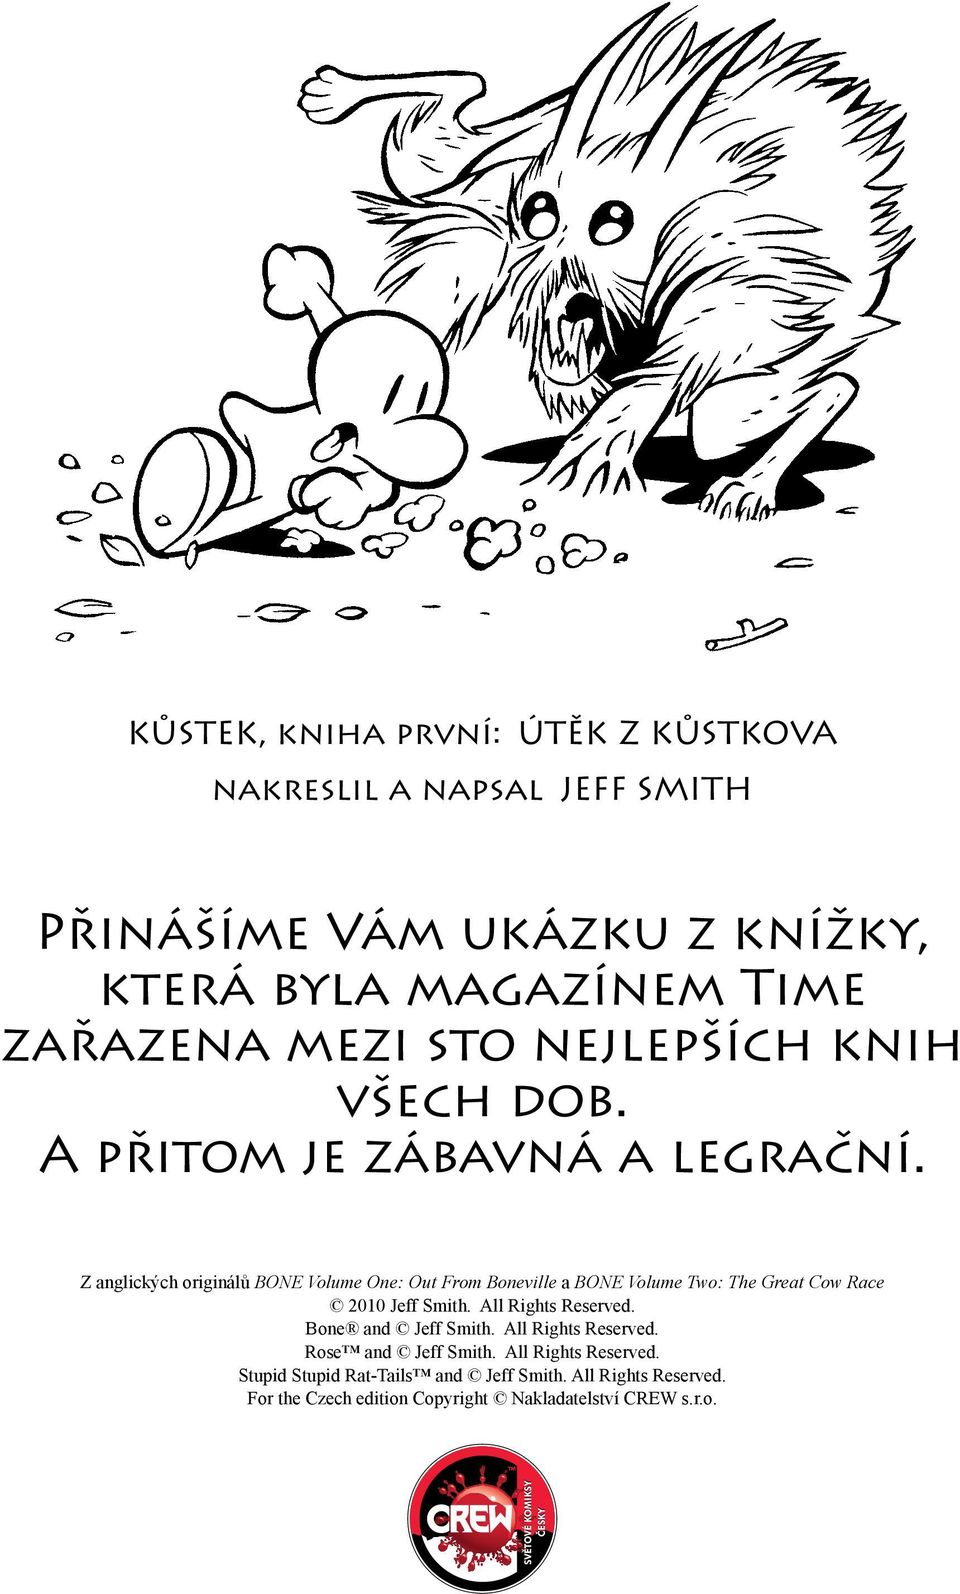 Z anglických originálů BONE Volume One: Out From Boneville a BONE Volume Two: The Great Cow Race 2010 Jeff Smith. All Rights Reserved.